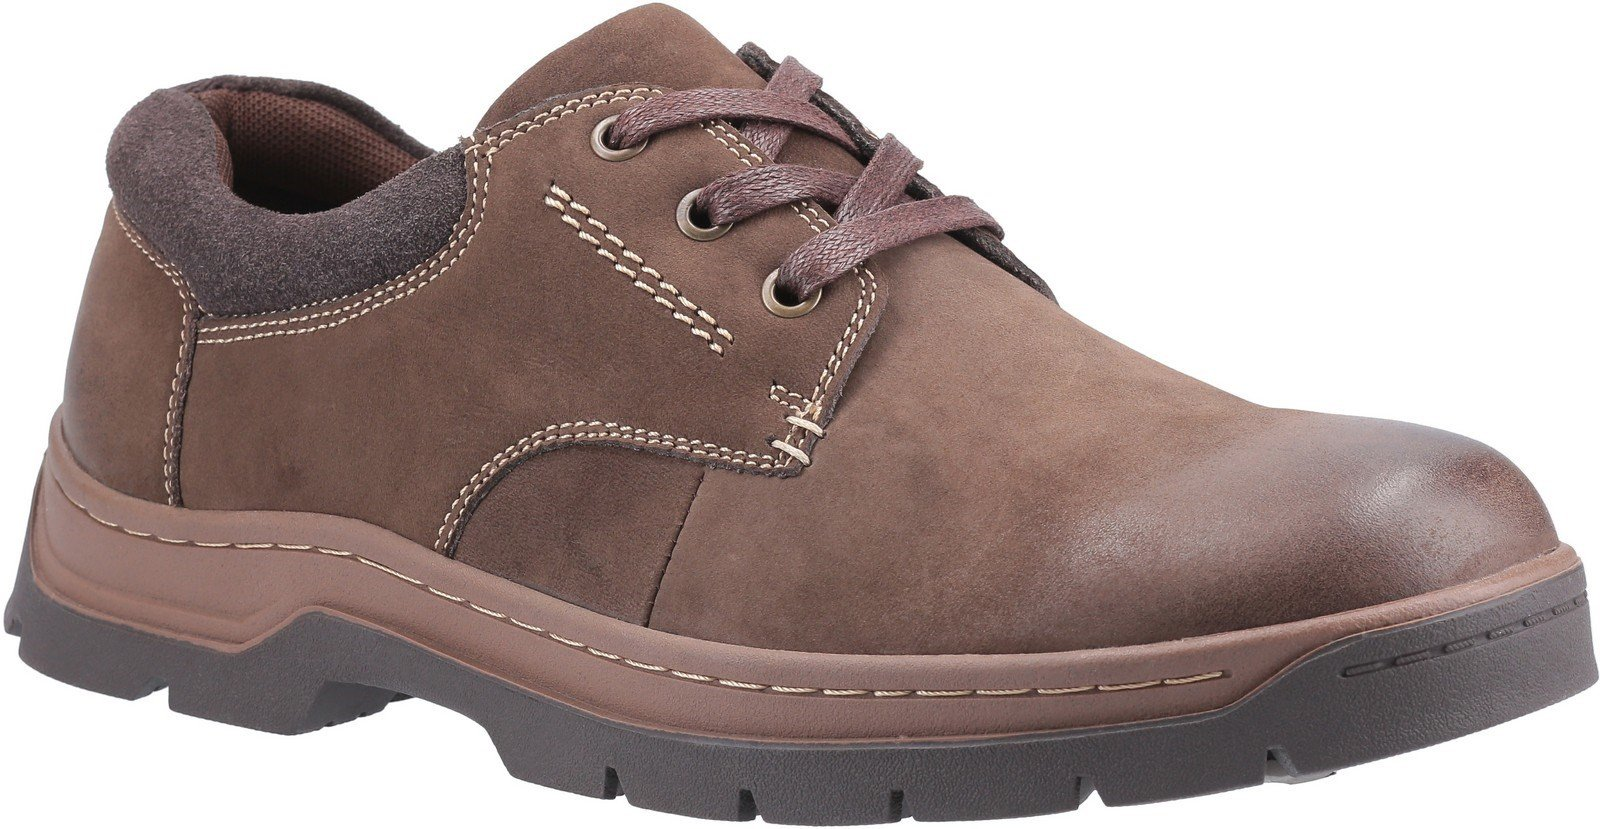 Cotswold Men's Thickwood Burnished Leather Derby Shoe Brown 28237 - Brown 7